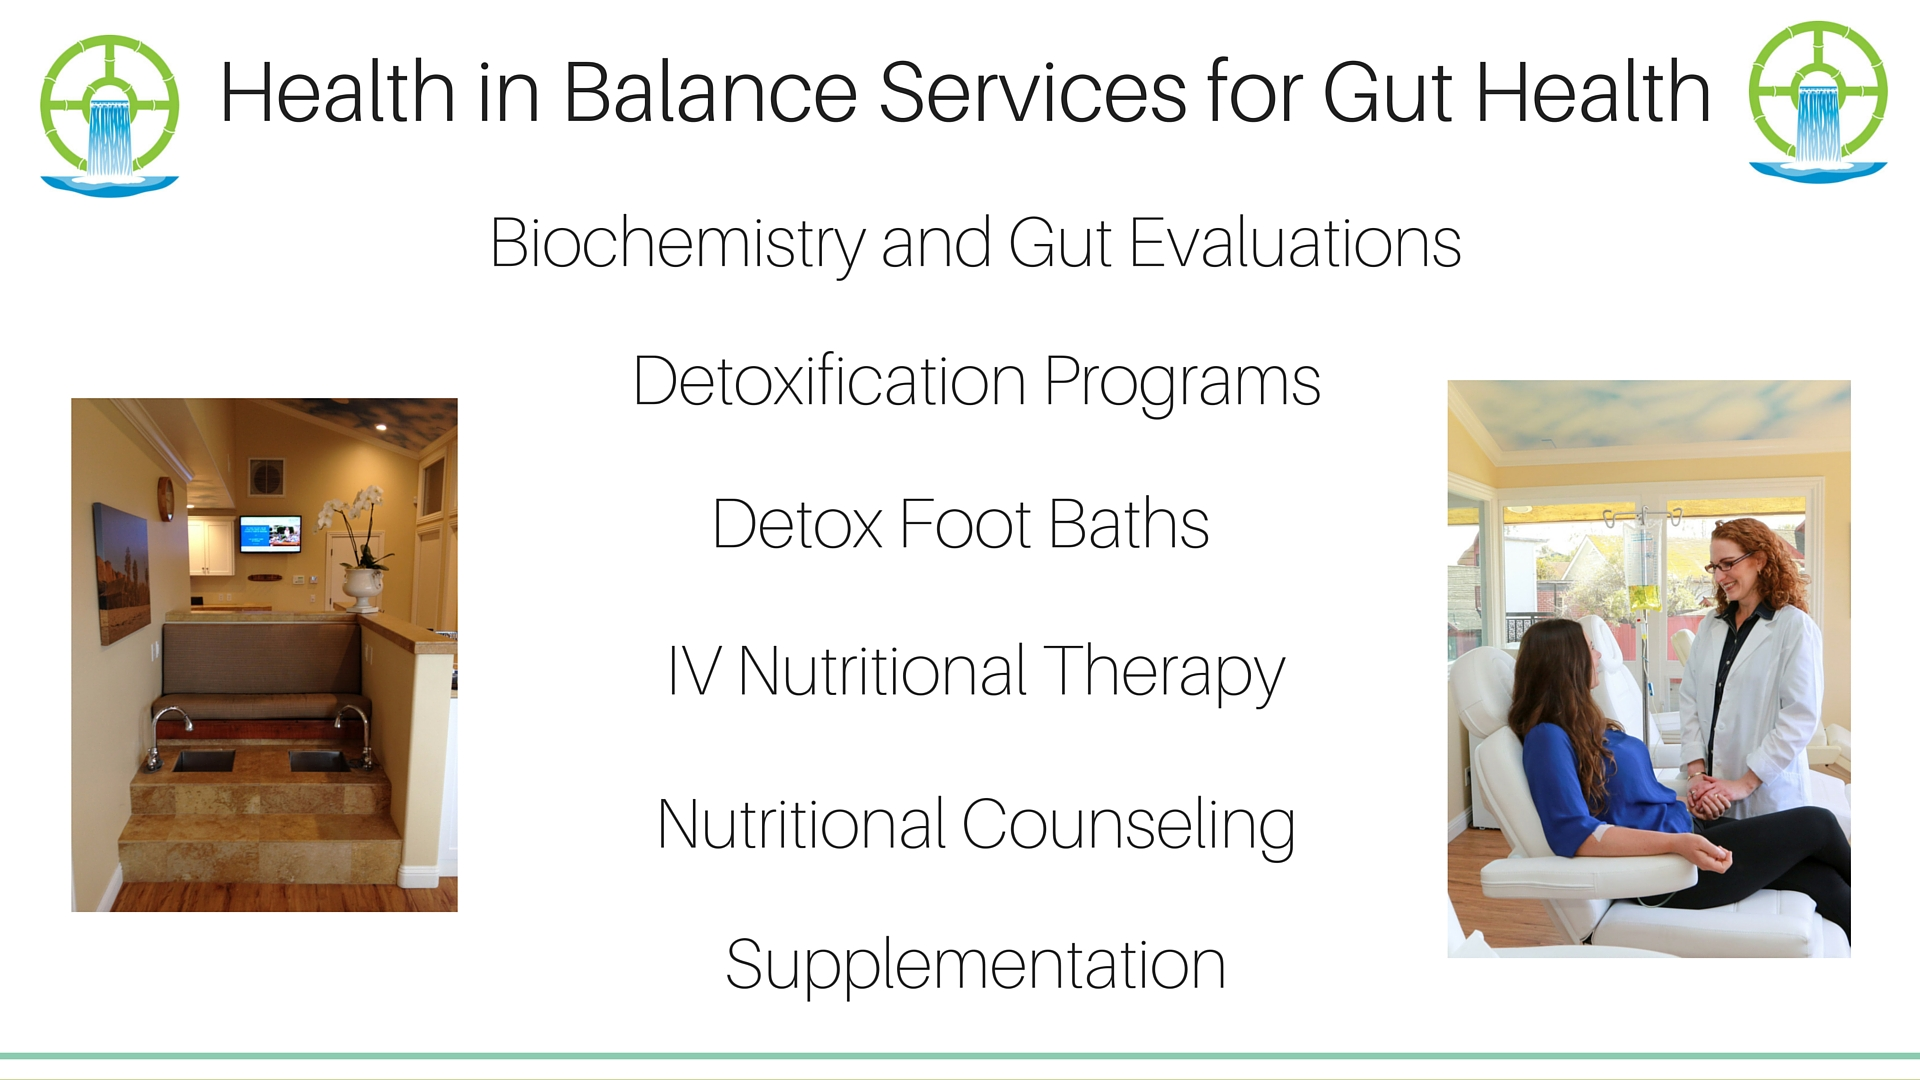 HIB Services for Gut Health.jpg